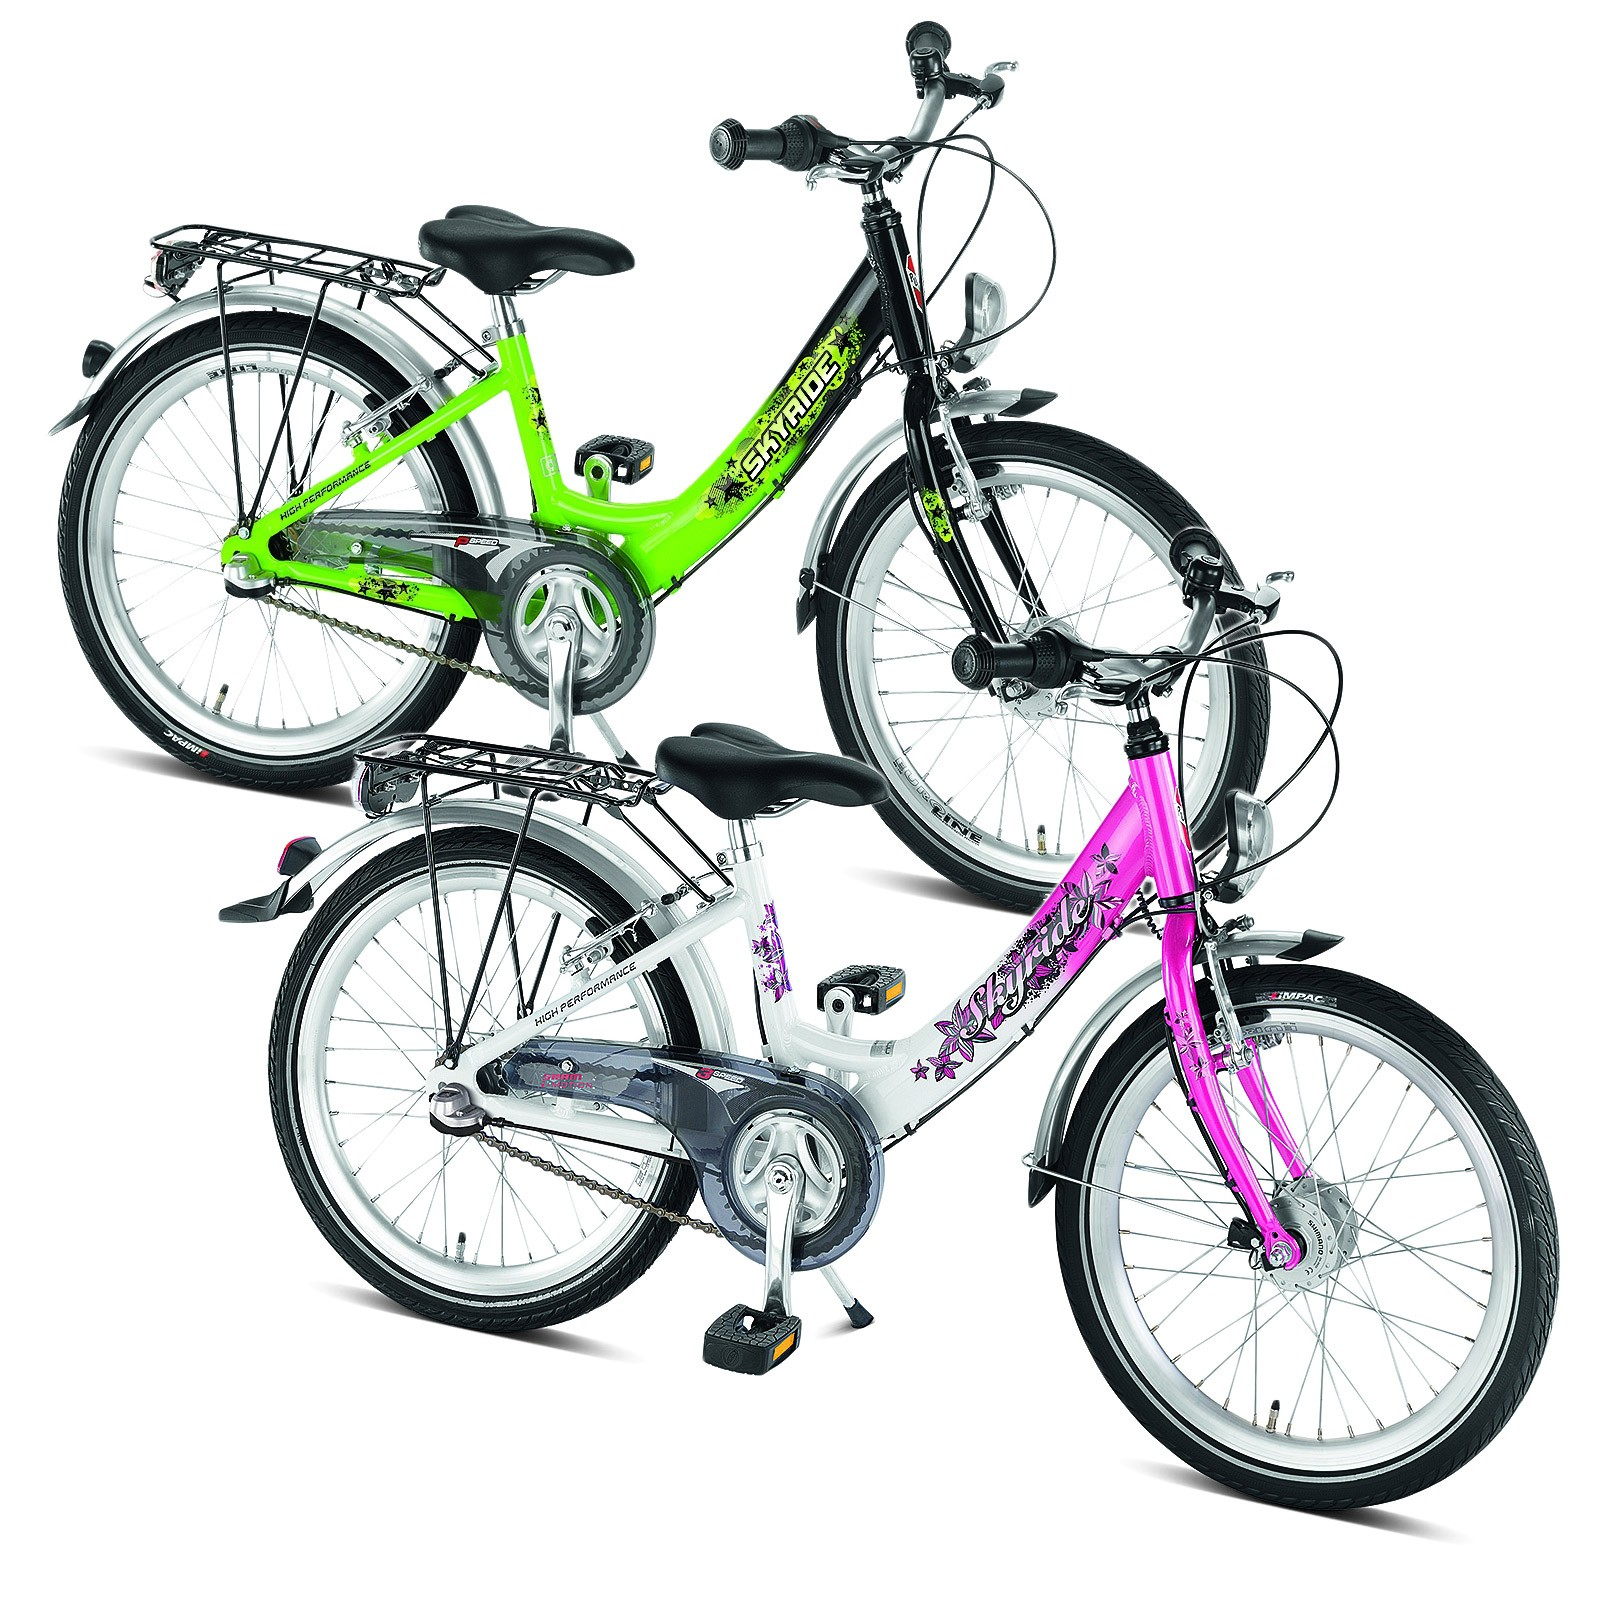 Puky Children S Bike Skyride 20 3 Alu Best Buy At T Fitness